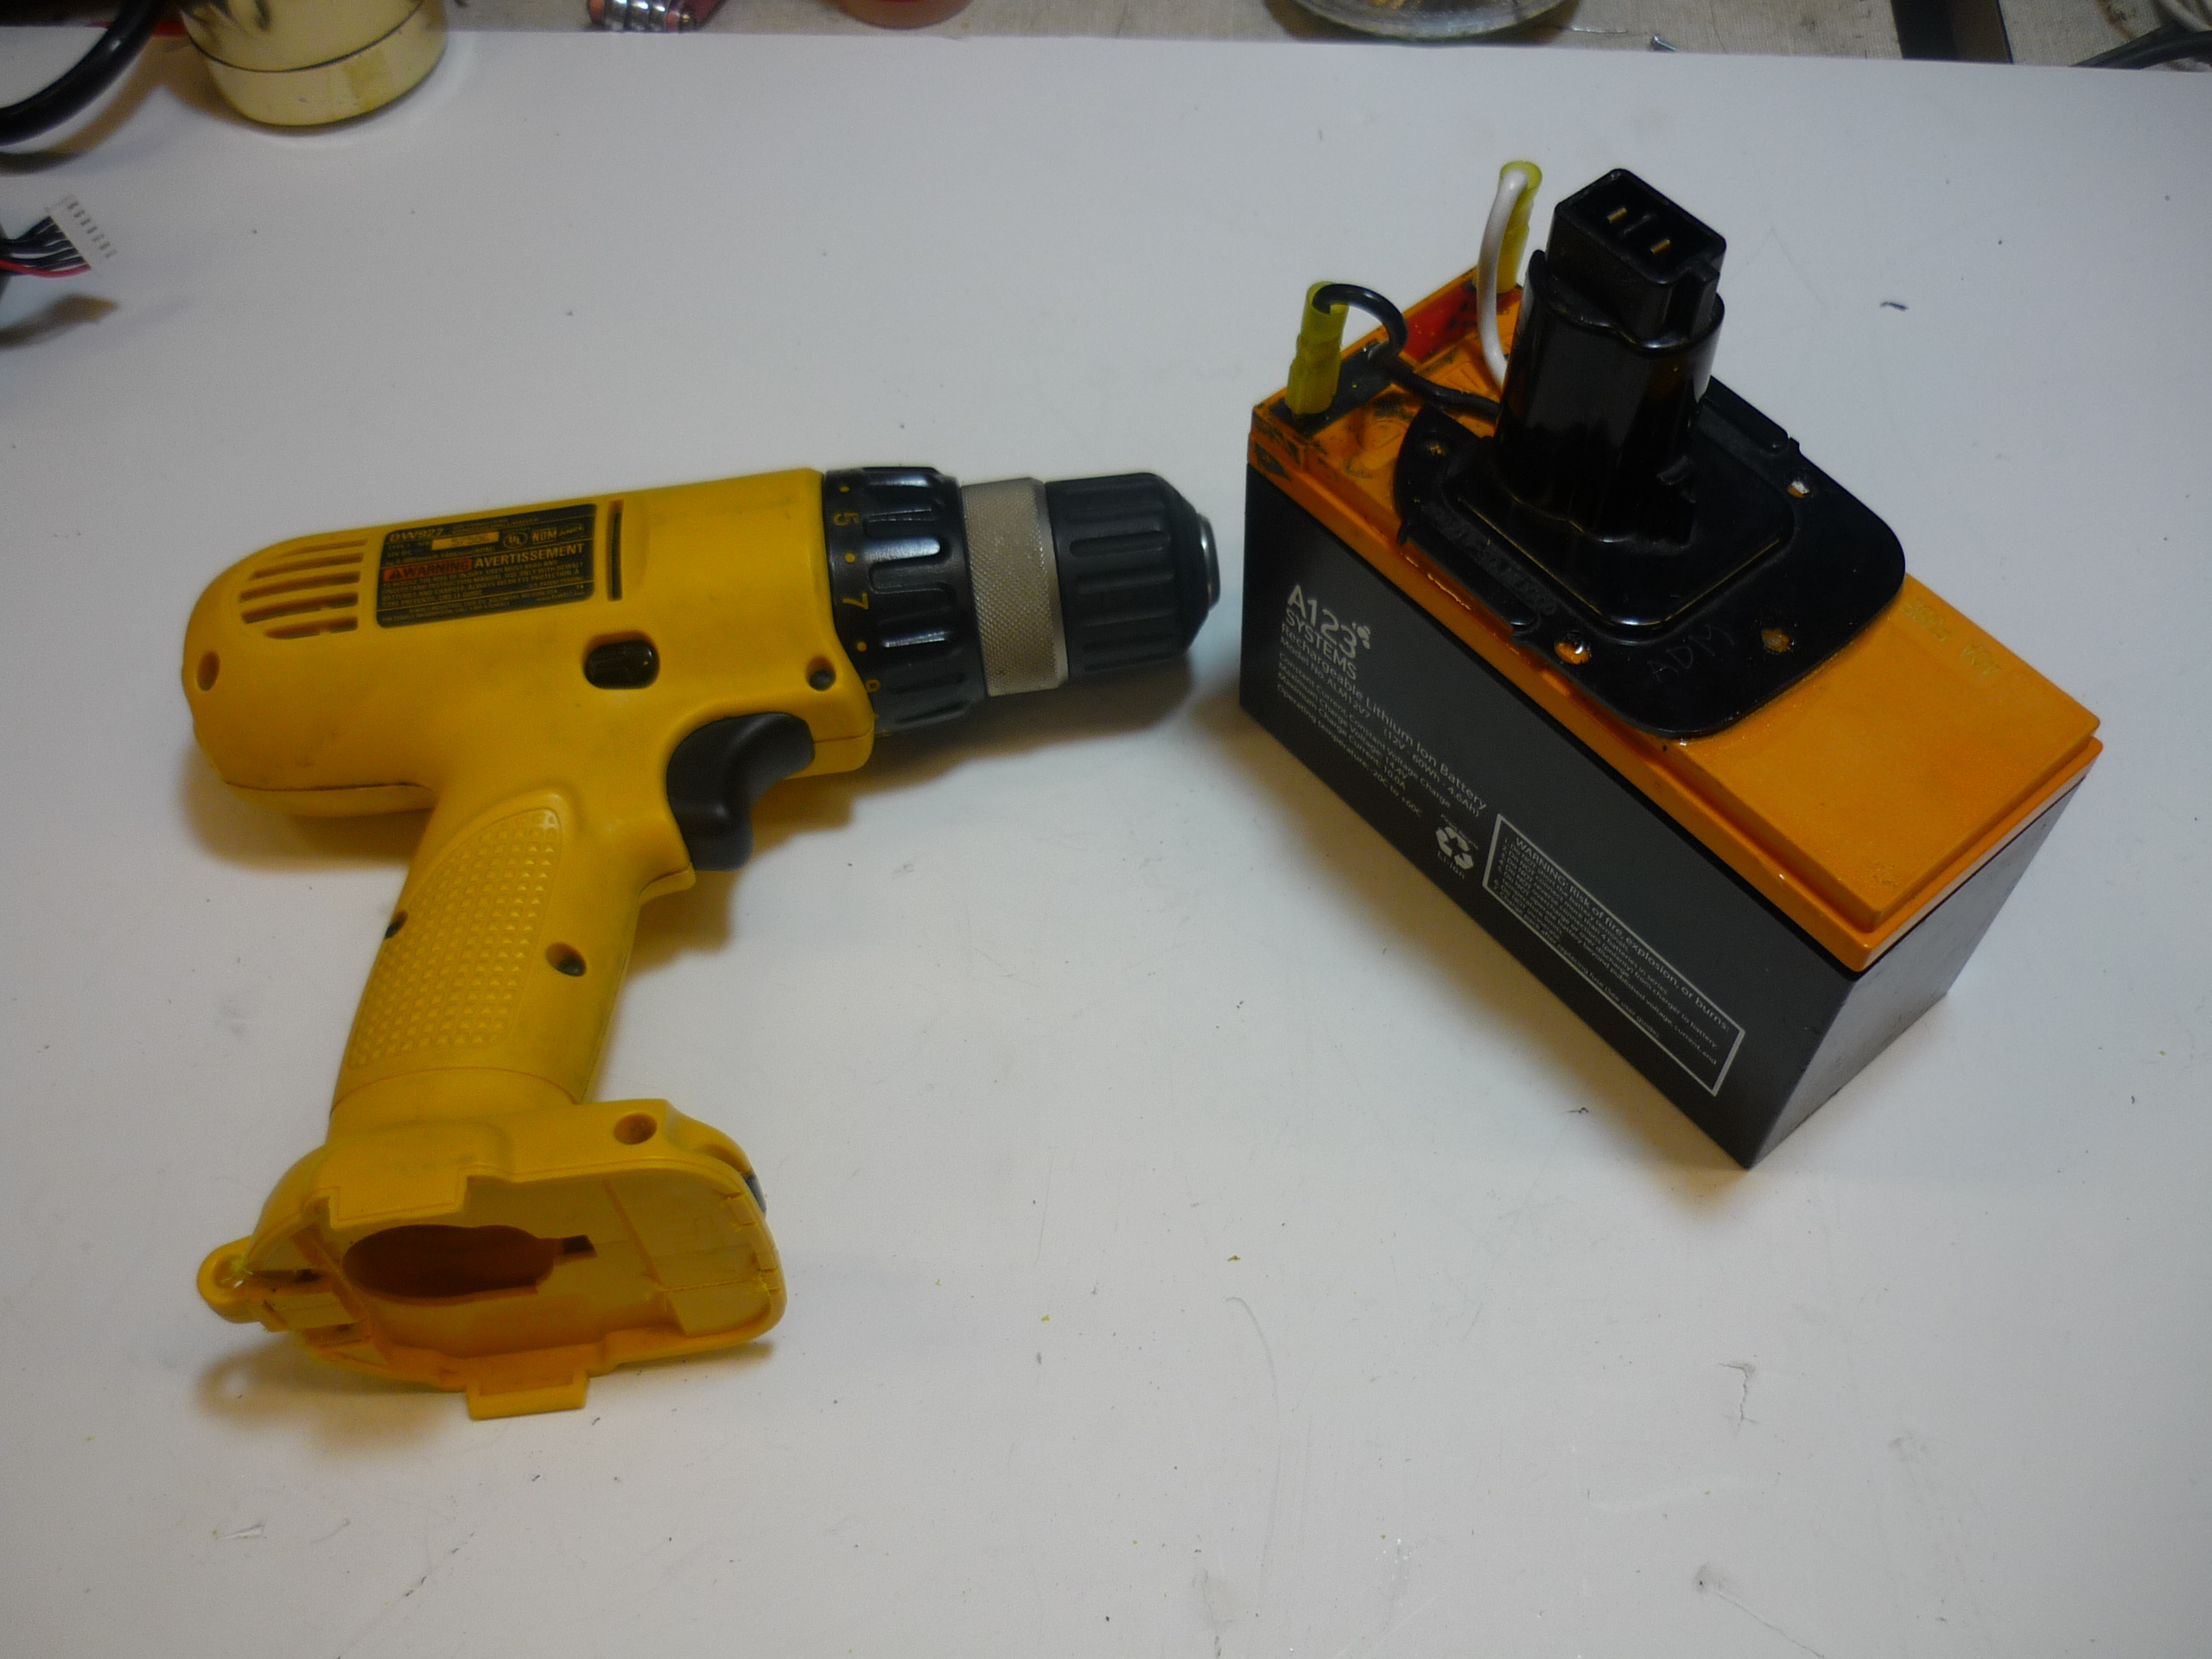 Picture of Makerspace Power Tool Upgrade: NiMh to Lithium Iron Phosphate